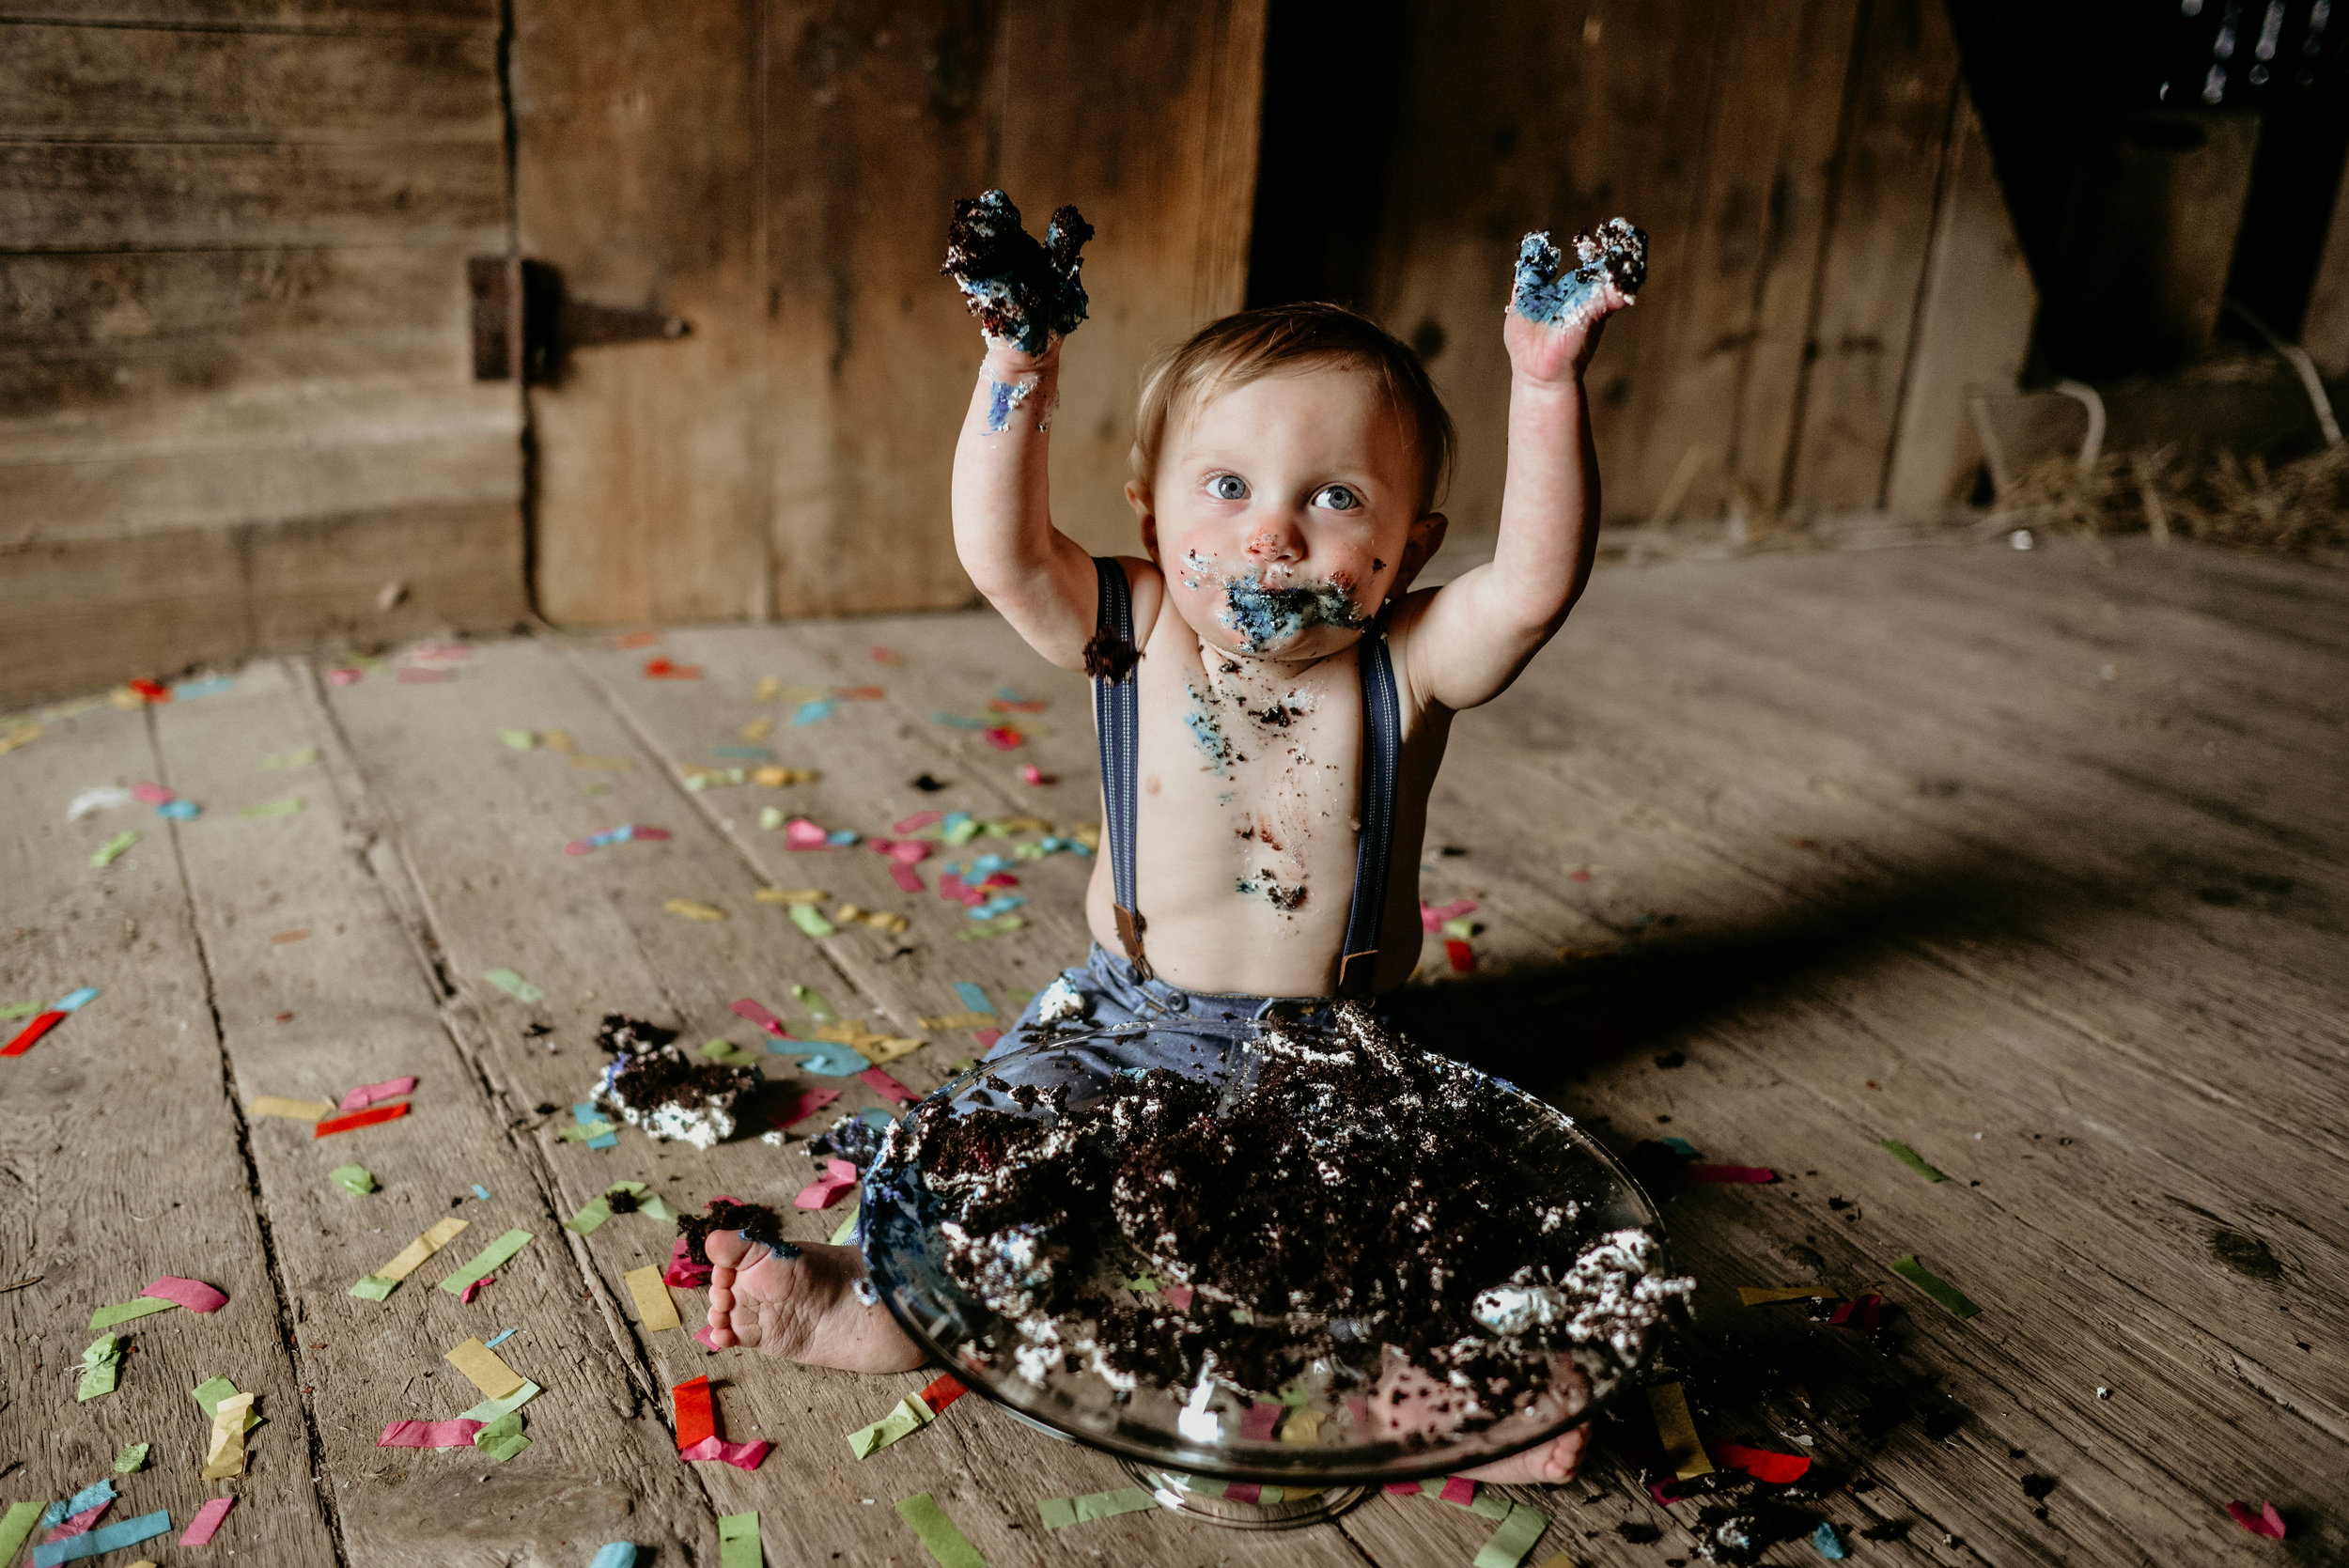 He devoured that cake.. maybe with a little help from mom too lol! I love a good cake smash and highly recommend it for their one year birtthday... or your 30th birthday too.... I mean I would be totally game for that!